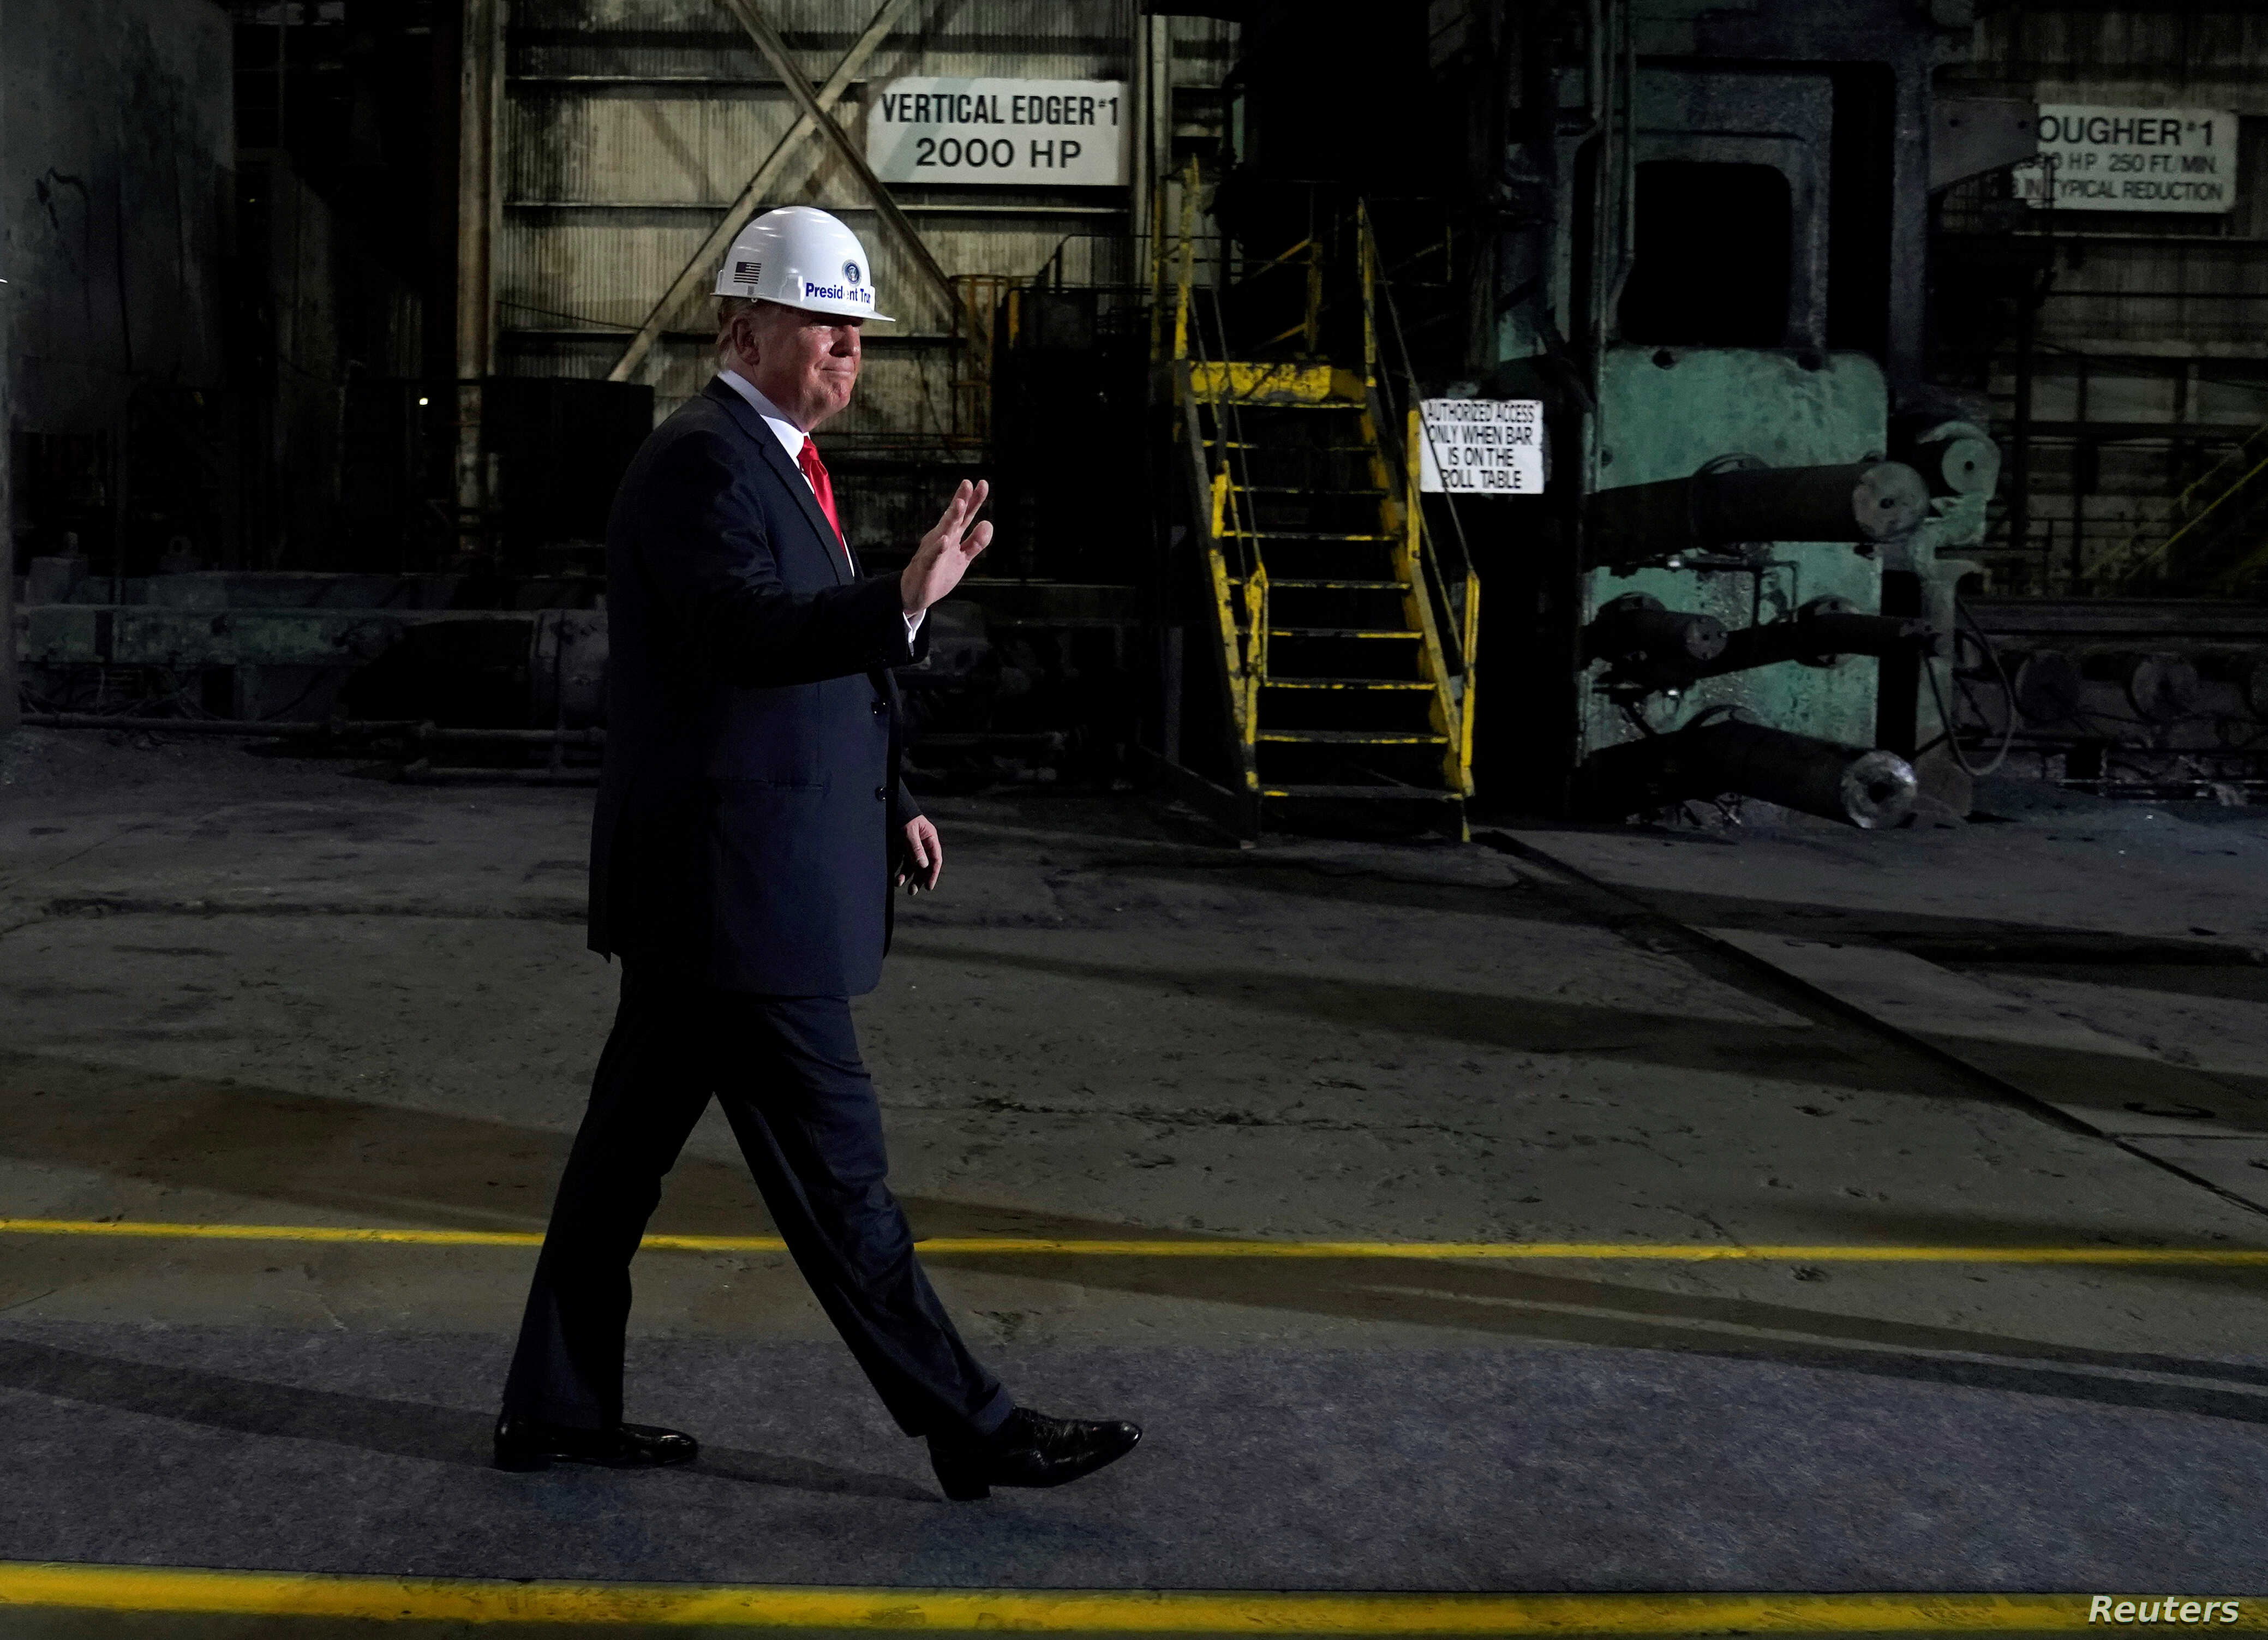 U.S. President Donald Trump tours the Granite City Works hot strip steel mill in Granite City, Illinois, U.S., July 26, 2018.